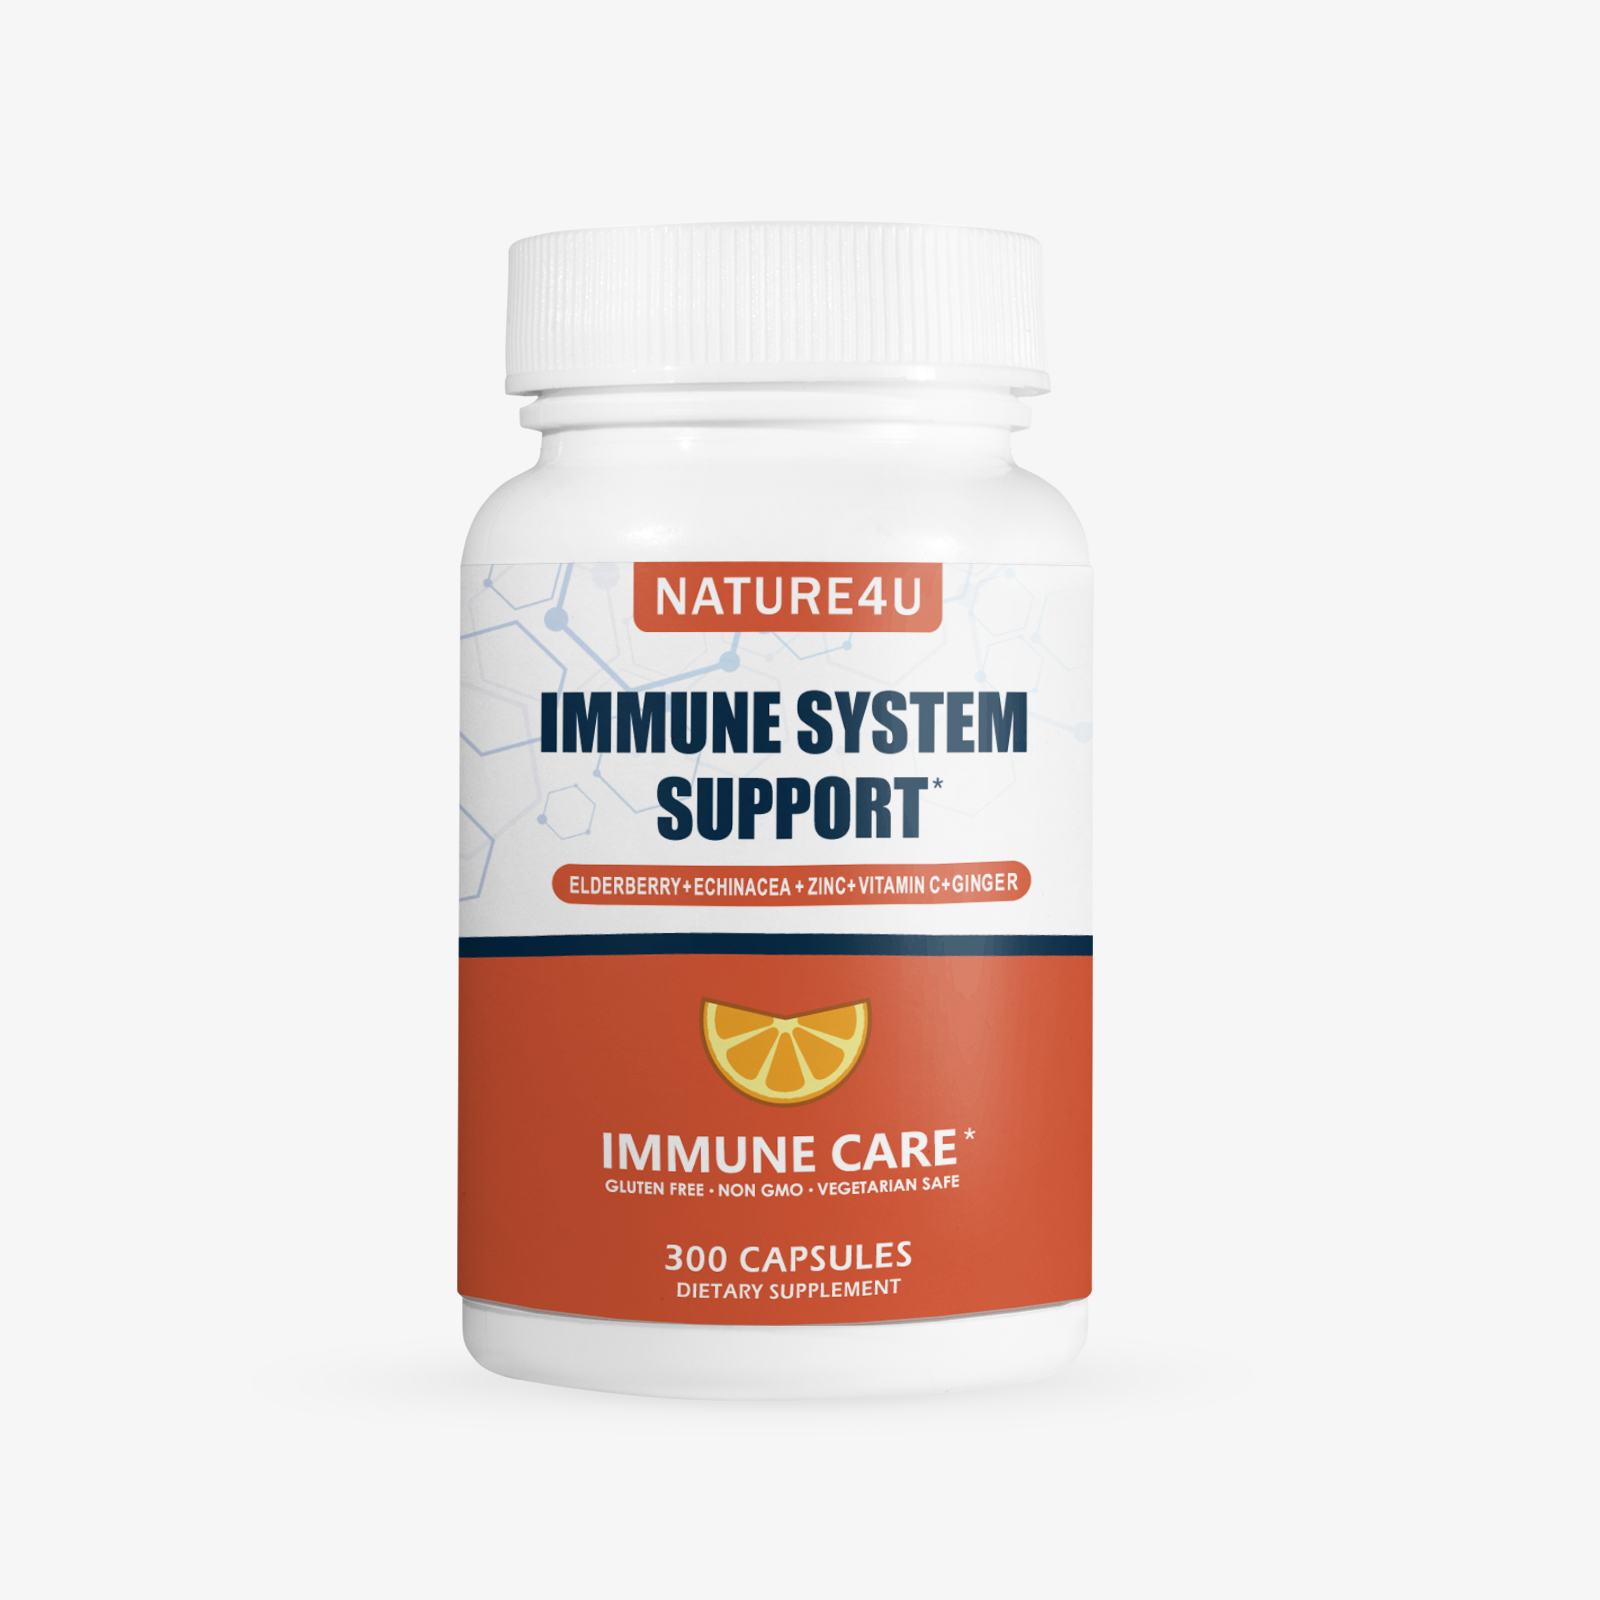 Elderberry Vitamin C + Zinc Immune Support  300 Capsules